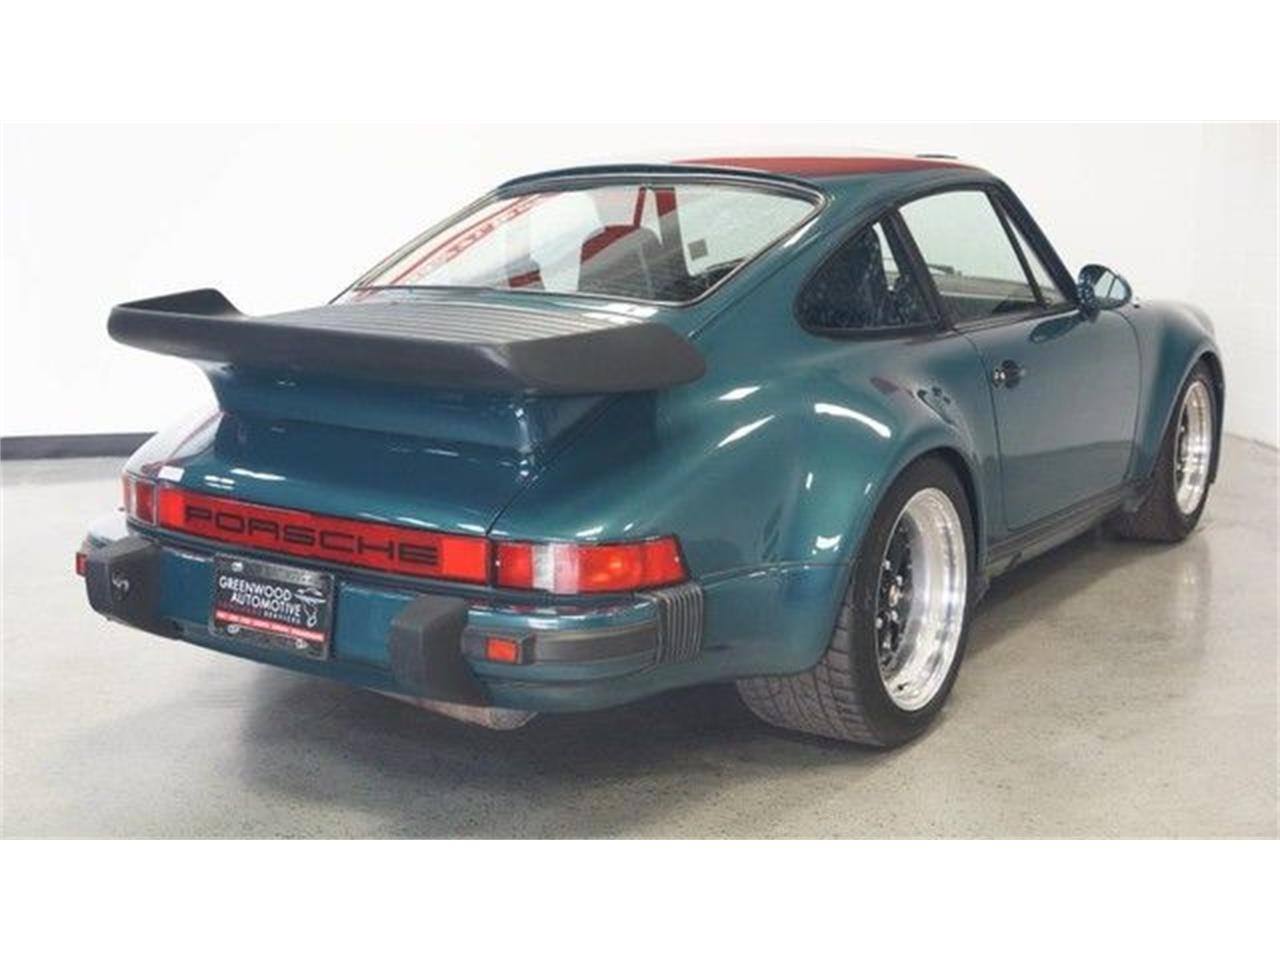 Large Picture of '79 Porsche 930 Turbo located in Greenwood Village Colorado - $79,988.00 - PUD7